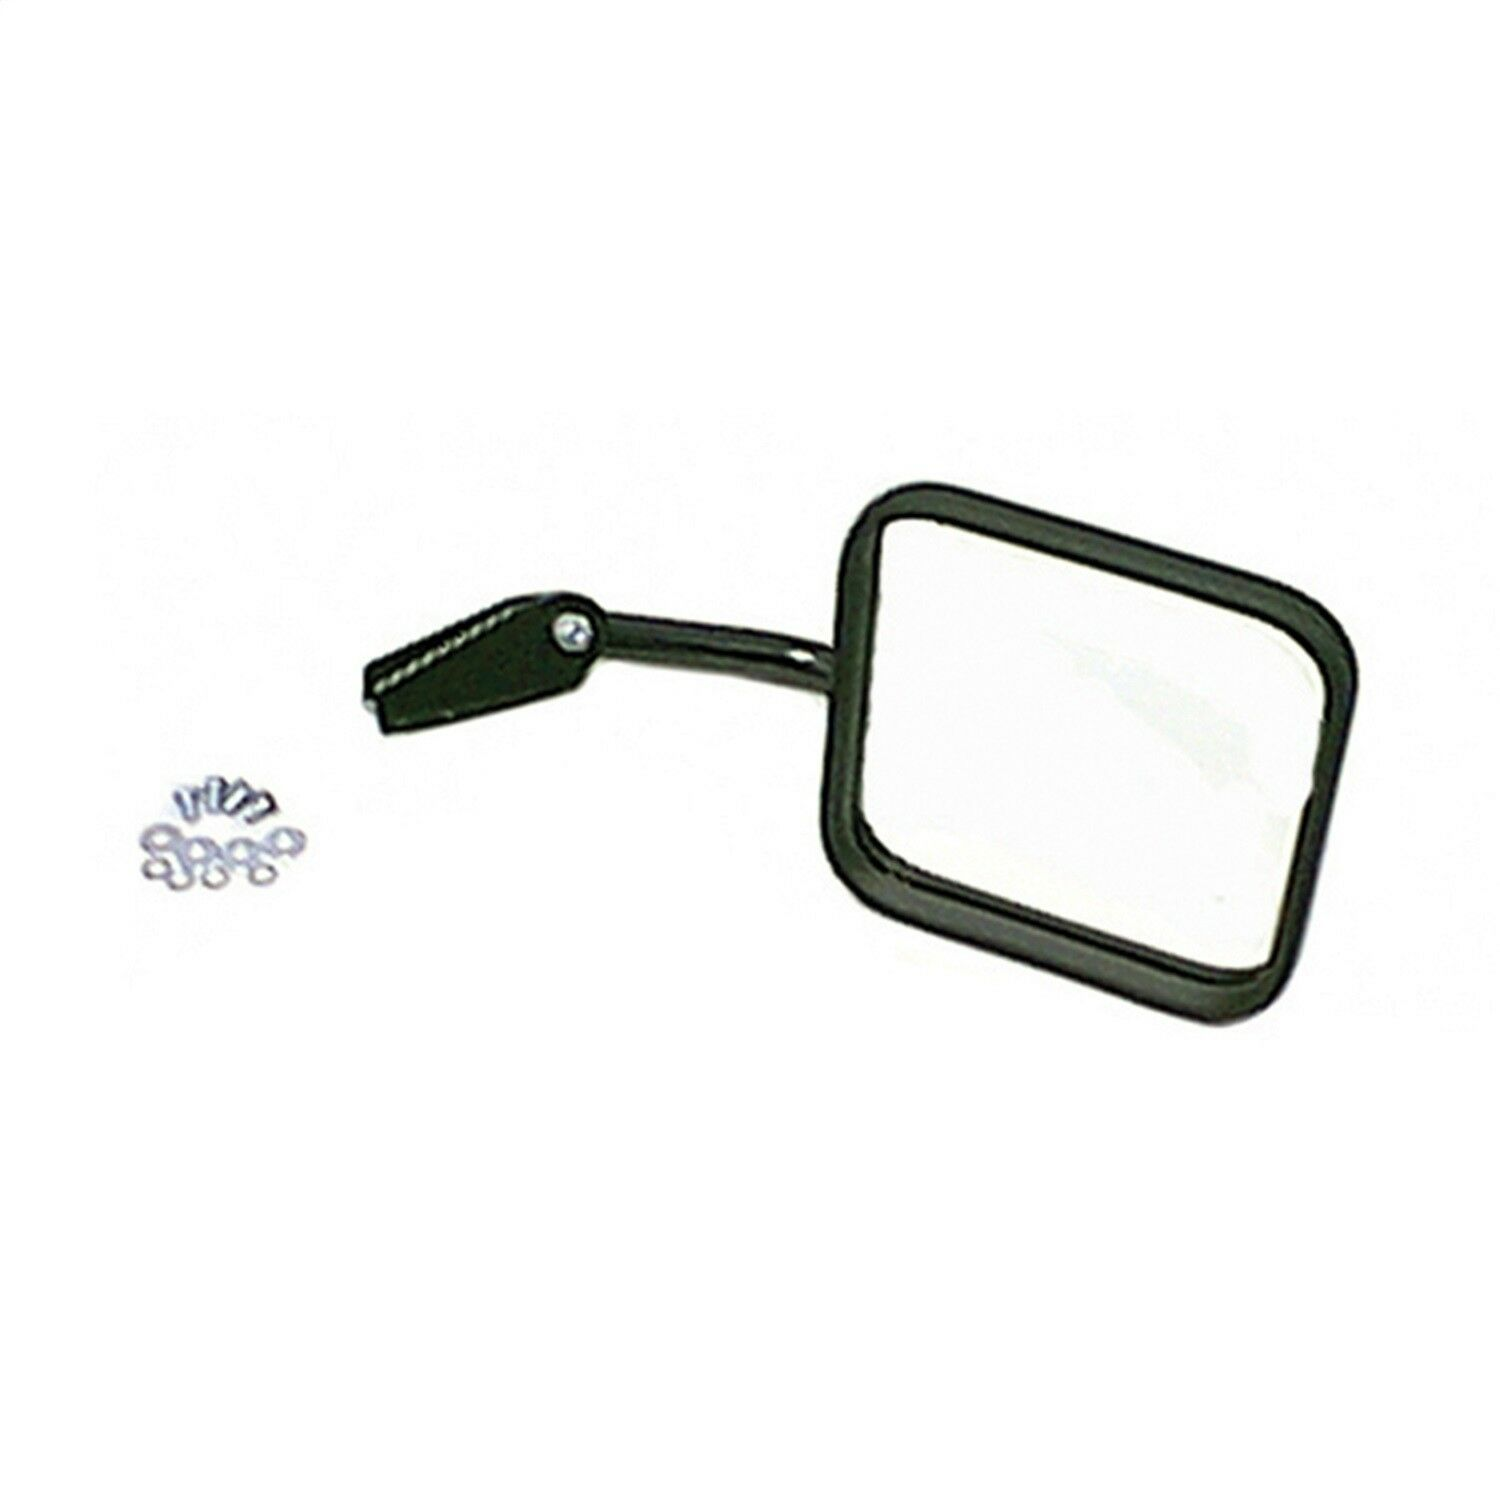 Black Right Side Mirror And Arm for Jeep CJ 1958-1986